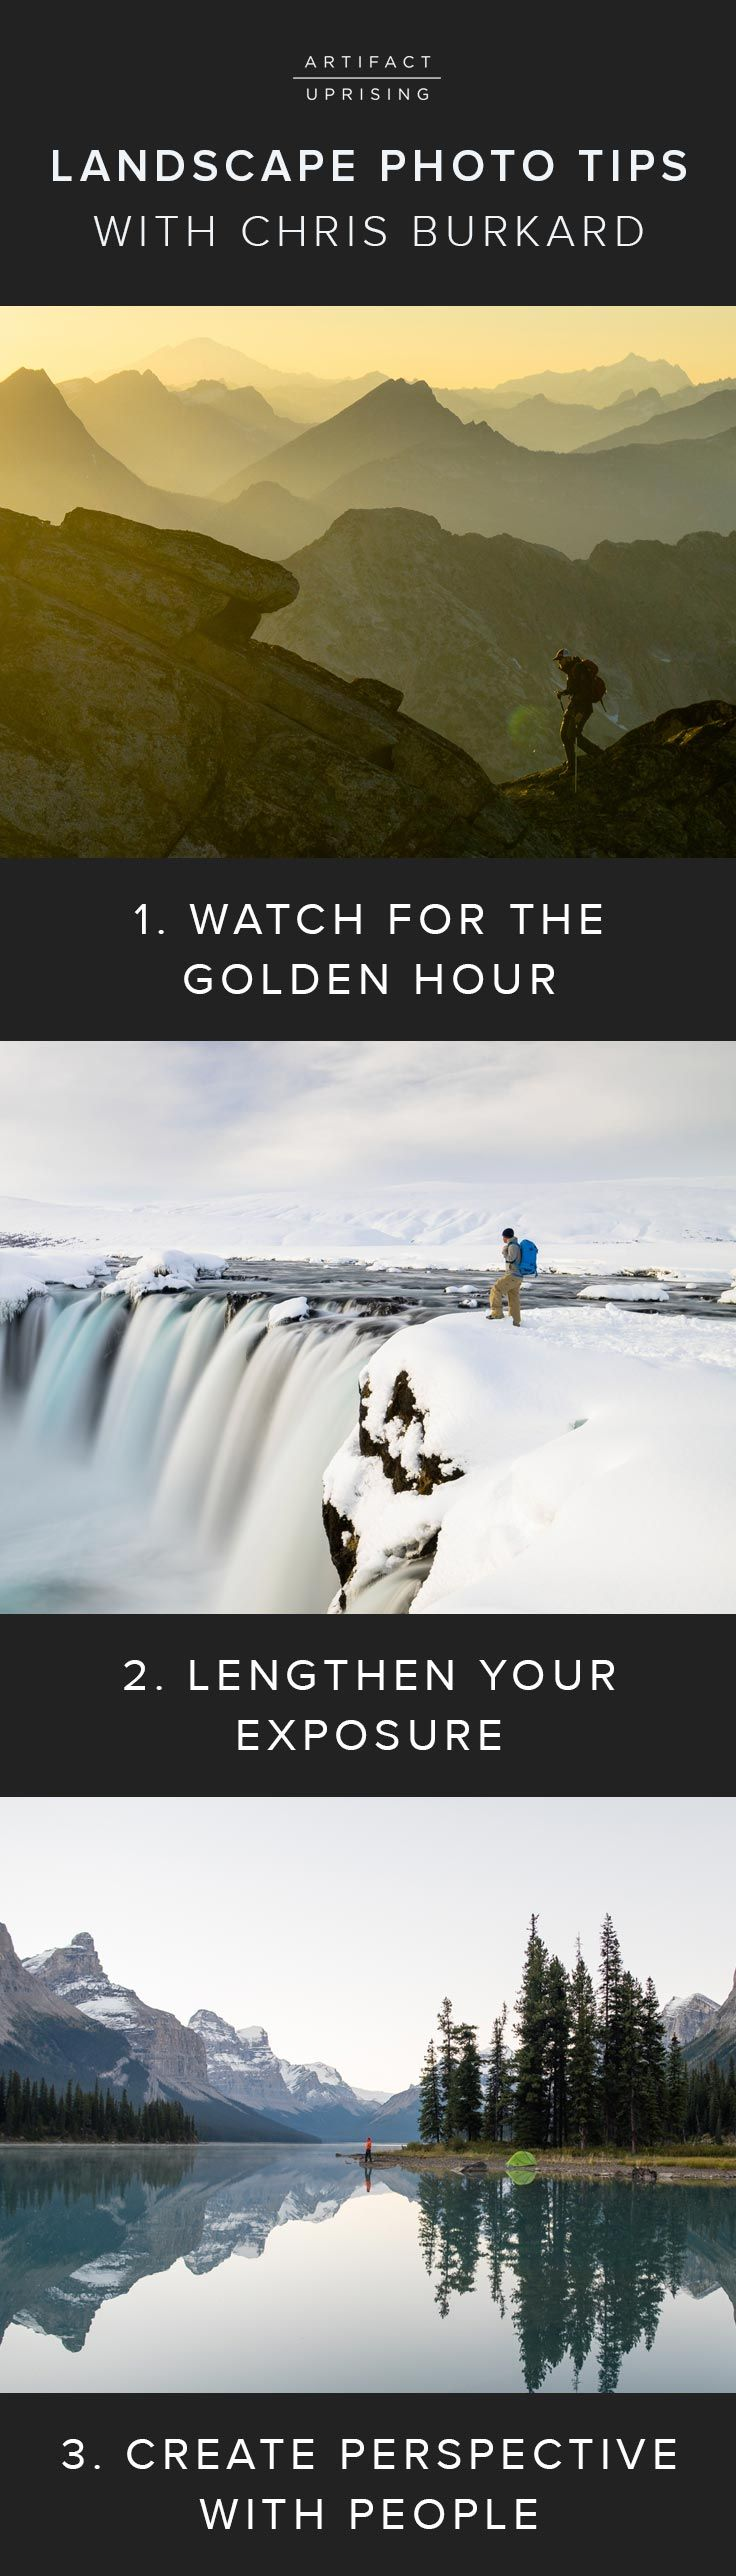 9 Landscape Photograph Tips (to never leave home without) | Chris Burkard X @artifactuprsng